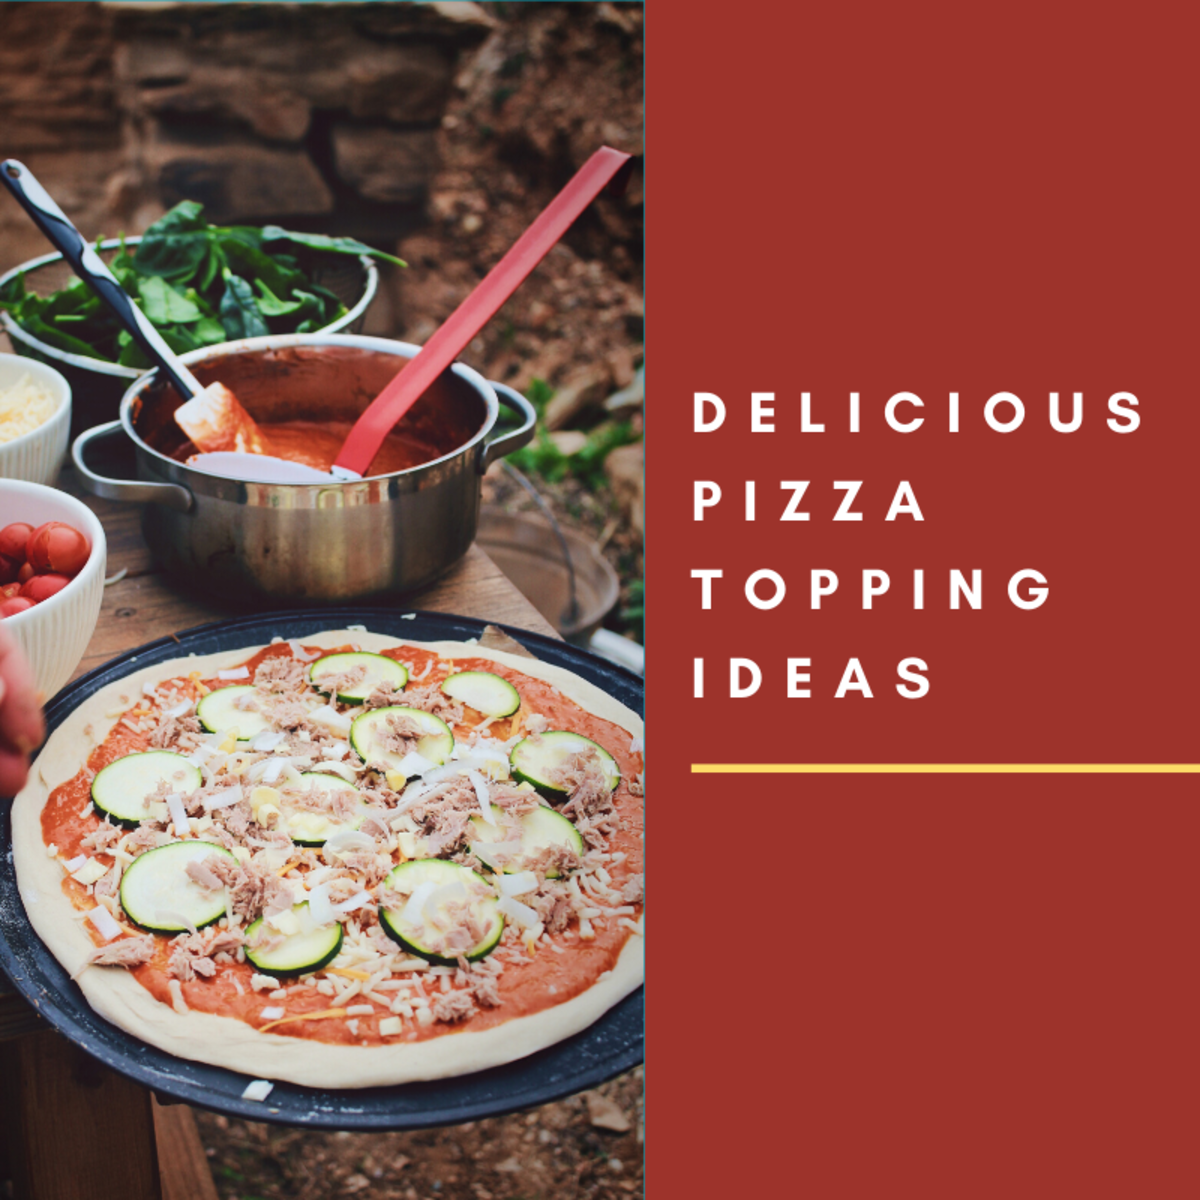 25 Delicious Pizza Topping Ideas